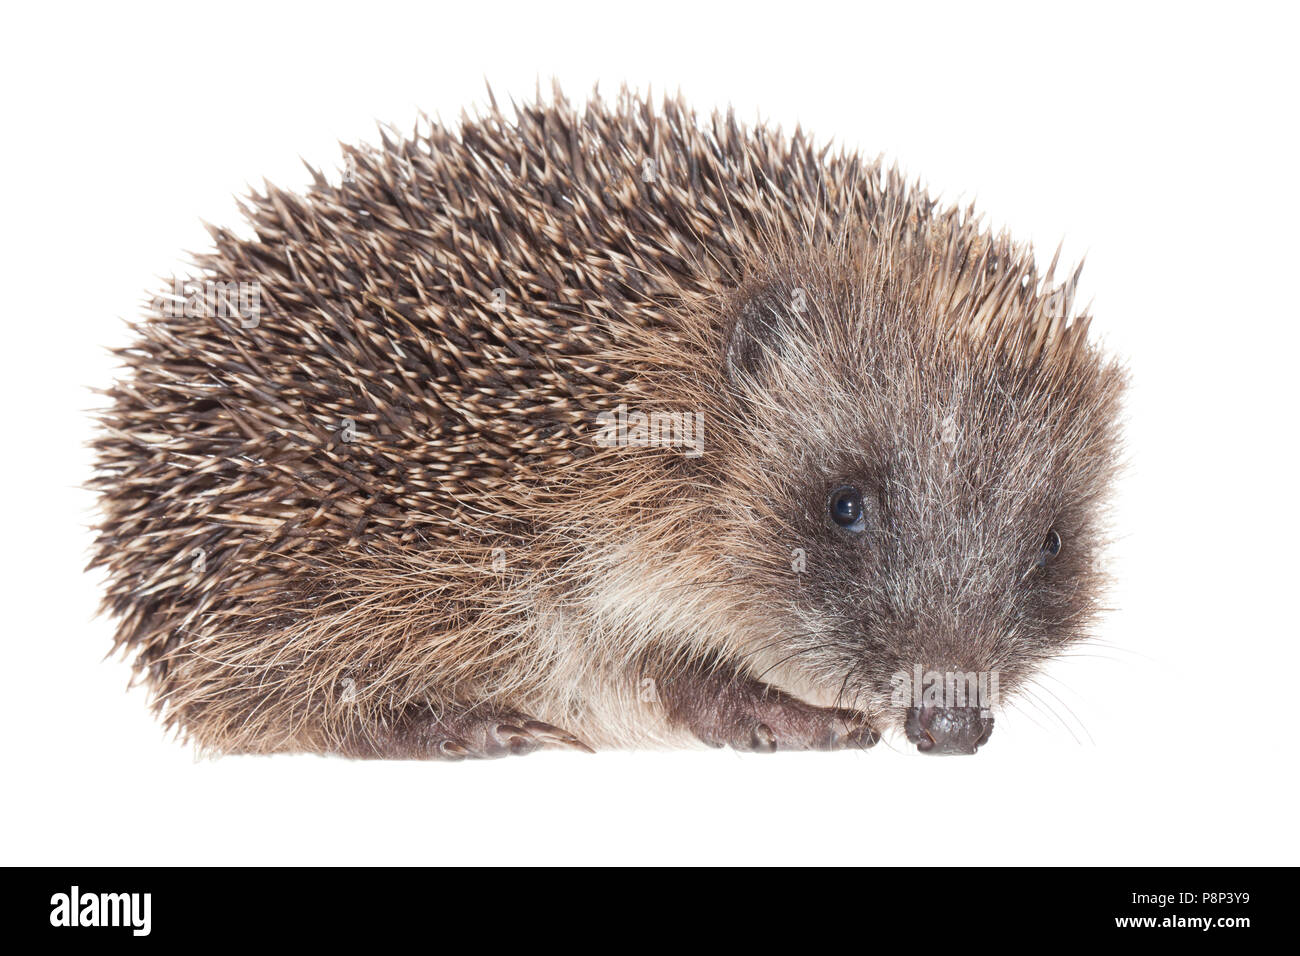 Hedgehog isolated against a white background - Stock Image